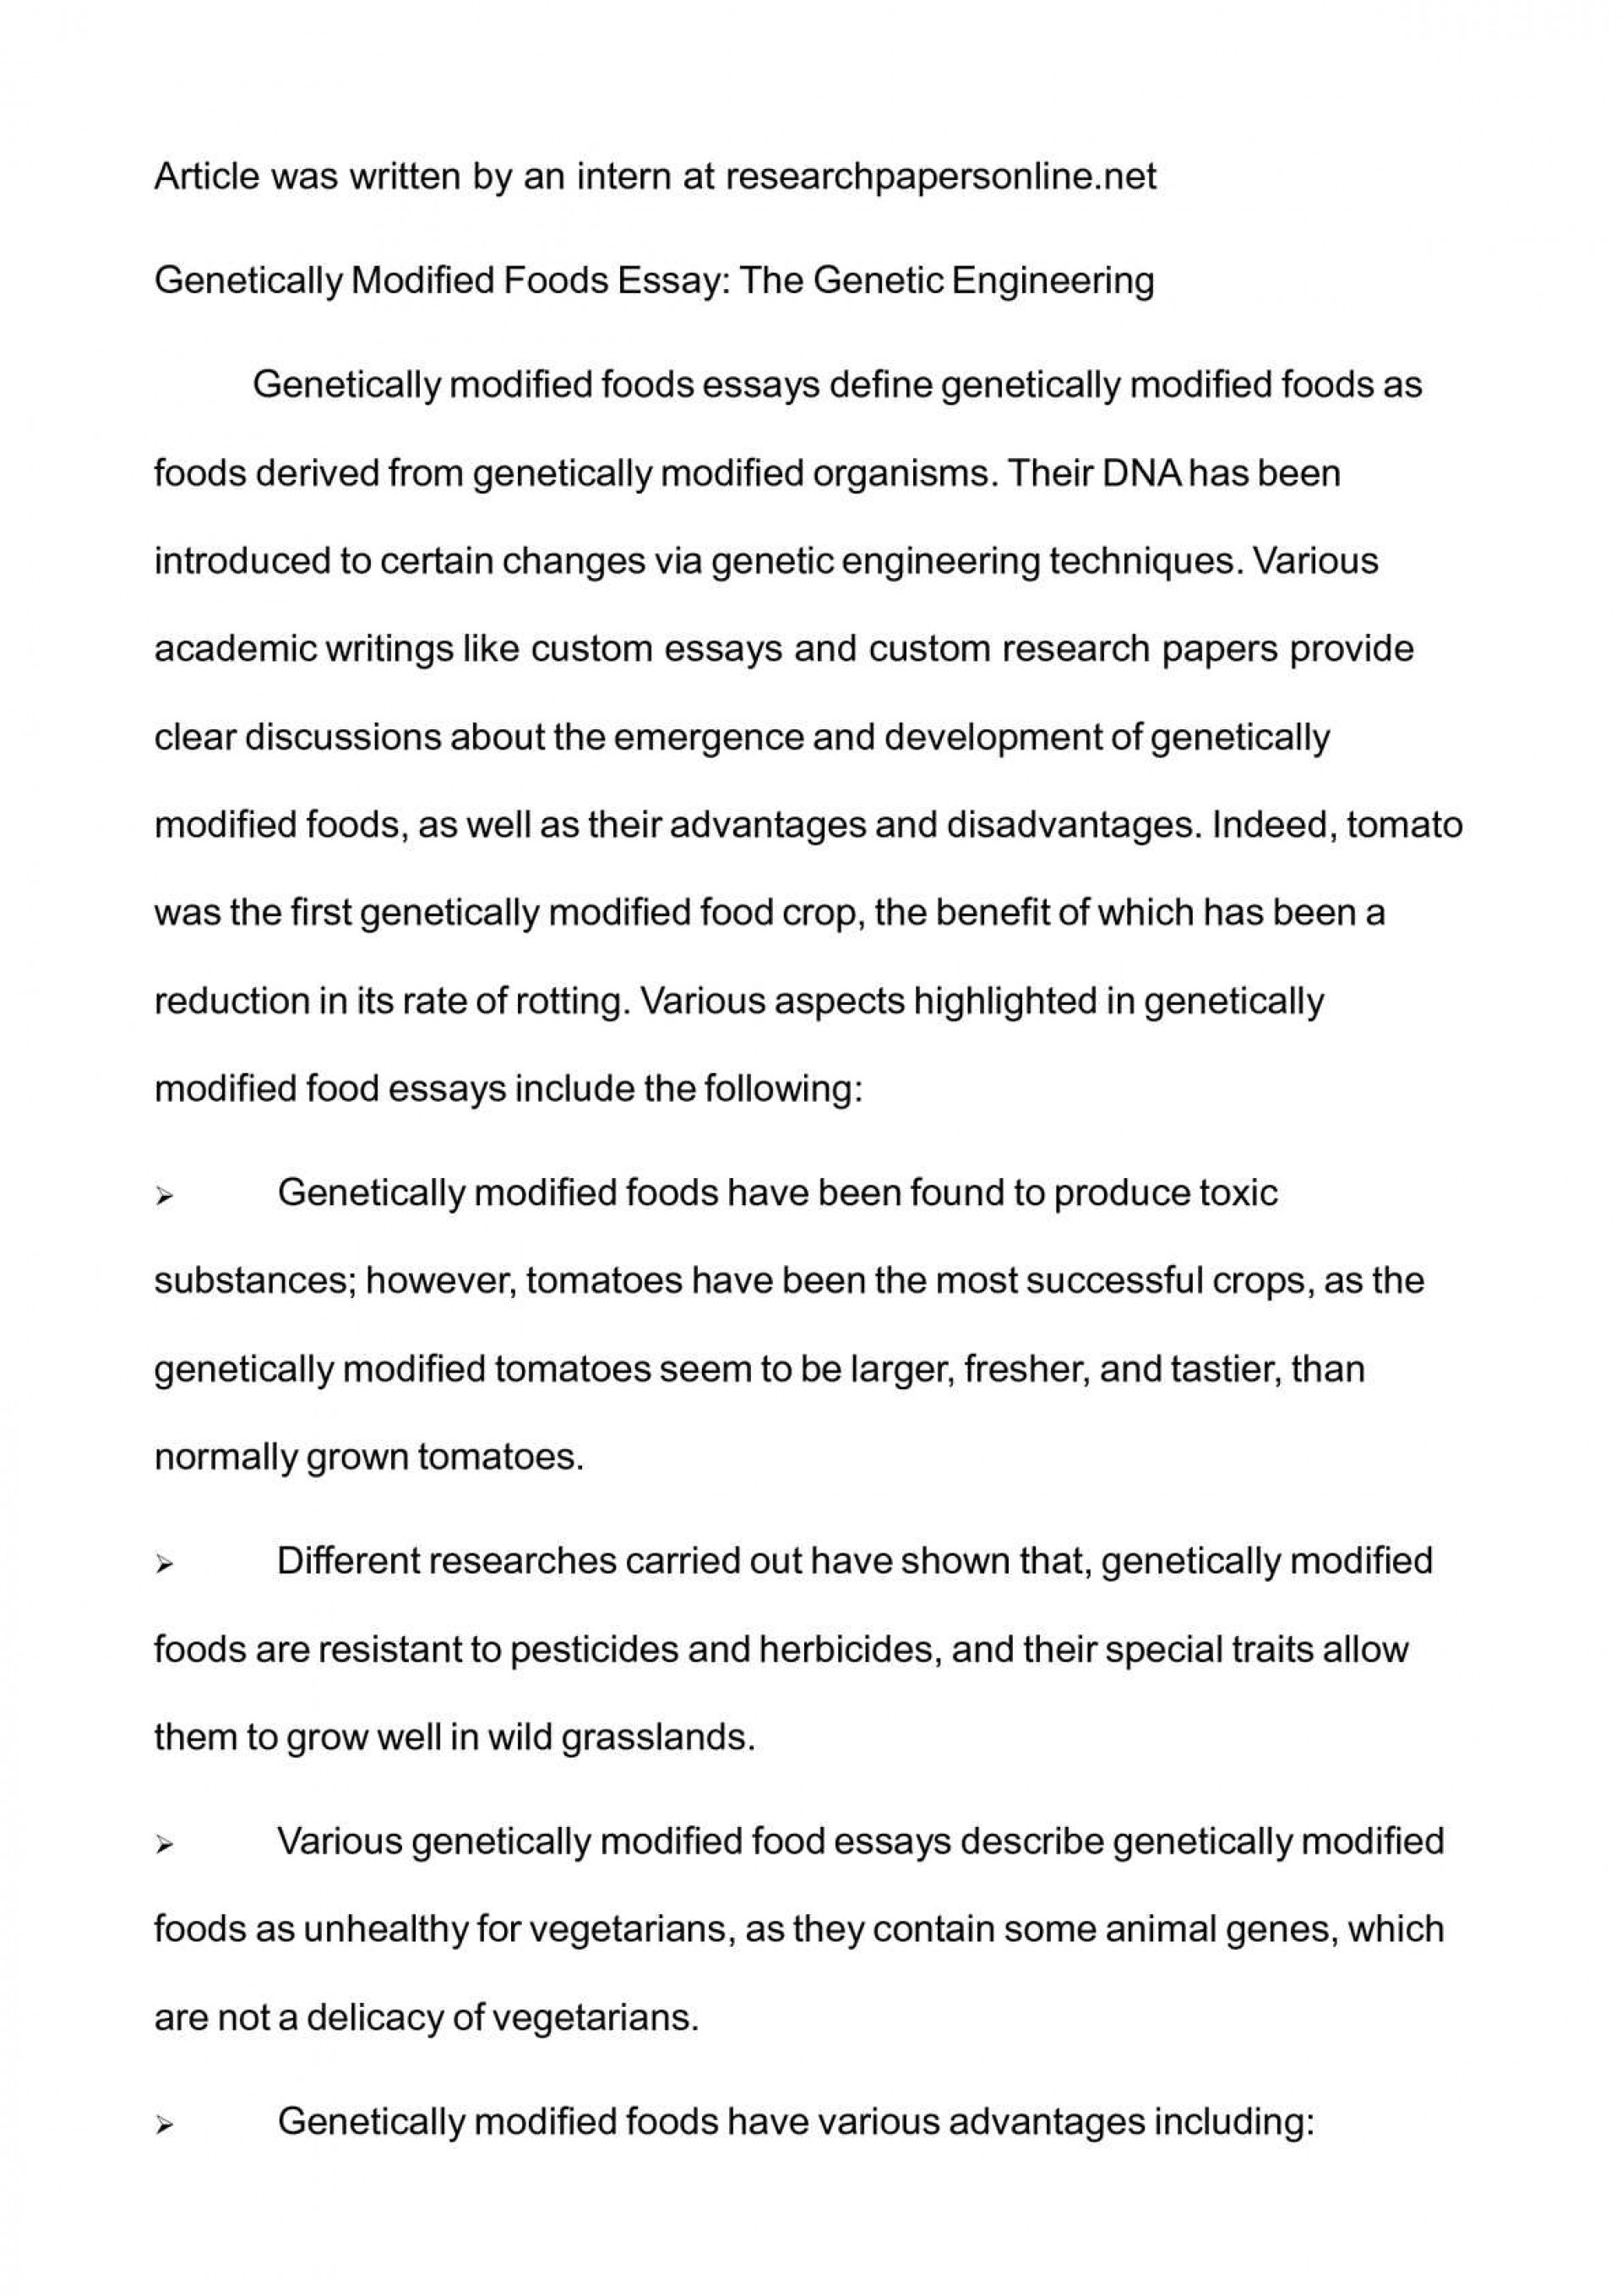 004 Essay About Genetic Engineering P1 Striking Disadvantages Of Argumentative On Human Persuasive 1920